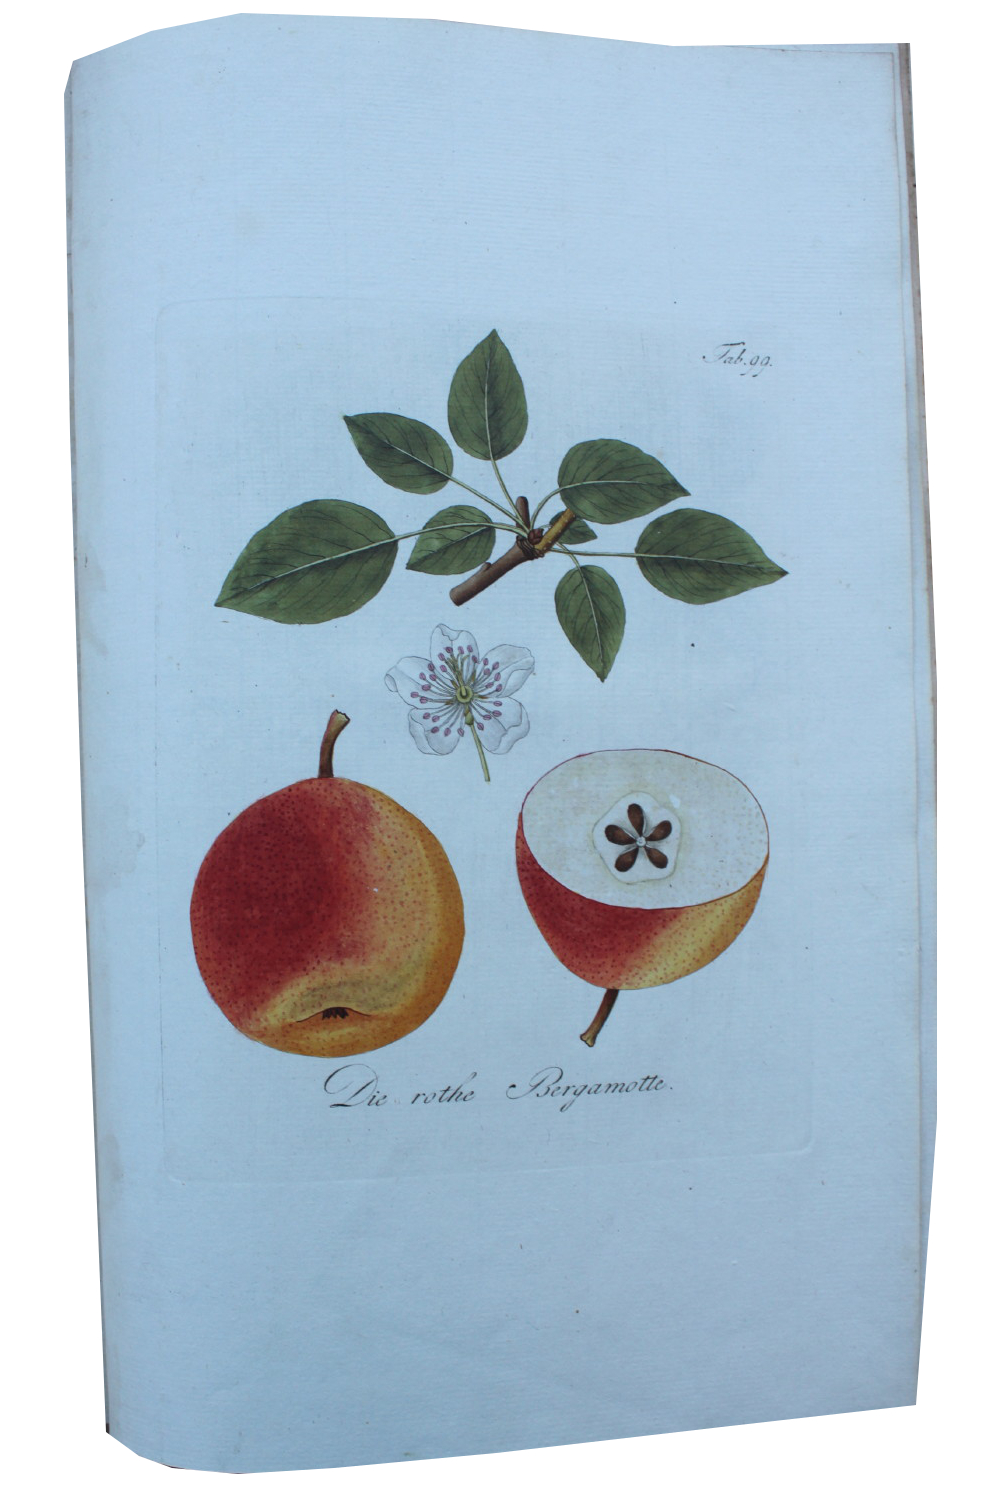 Image for Pomona Austriaca, ou Arbres Fruitiers d'Autriche, Représentés en Figures, Dessinées et Peintes d'Apres Nature. [Fruit Trees of Austria Represented by figures, drawn and painted from Nature.] Abhandlung von den Obstaumen worinn ihre Gestalt, Erziehung und Pflege angezeigt und beschreiben wird mit 100 sehr feinen Abbildungen in Kupfer gestochen und nach der Natur in Farben dargestellt. [Treatise on Fruit Trees wherein their form, growth and tending will be shown and described, with 100 very fine illustrations engraved in copper, and depicted in their natural colours.]